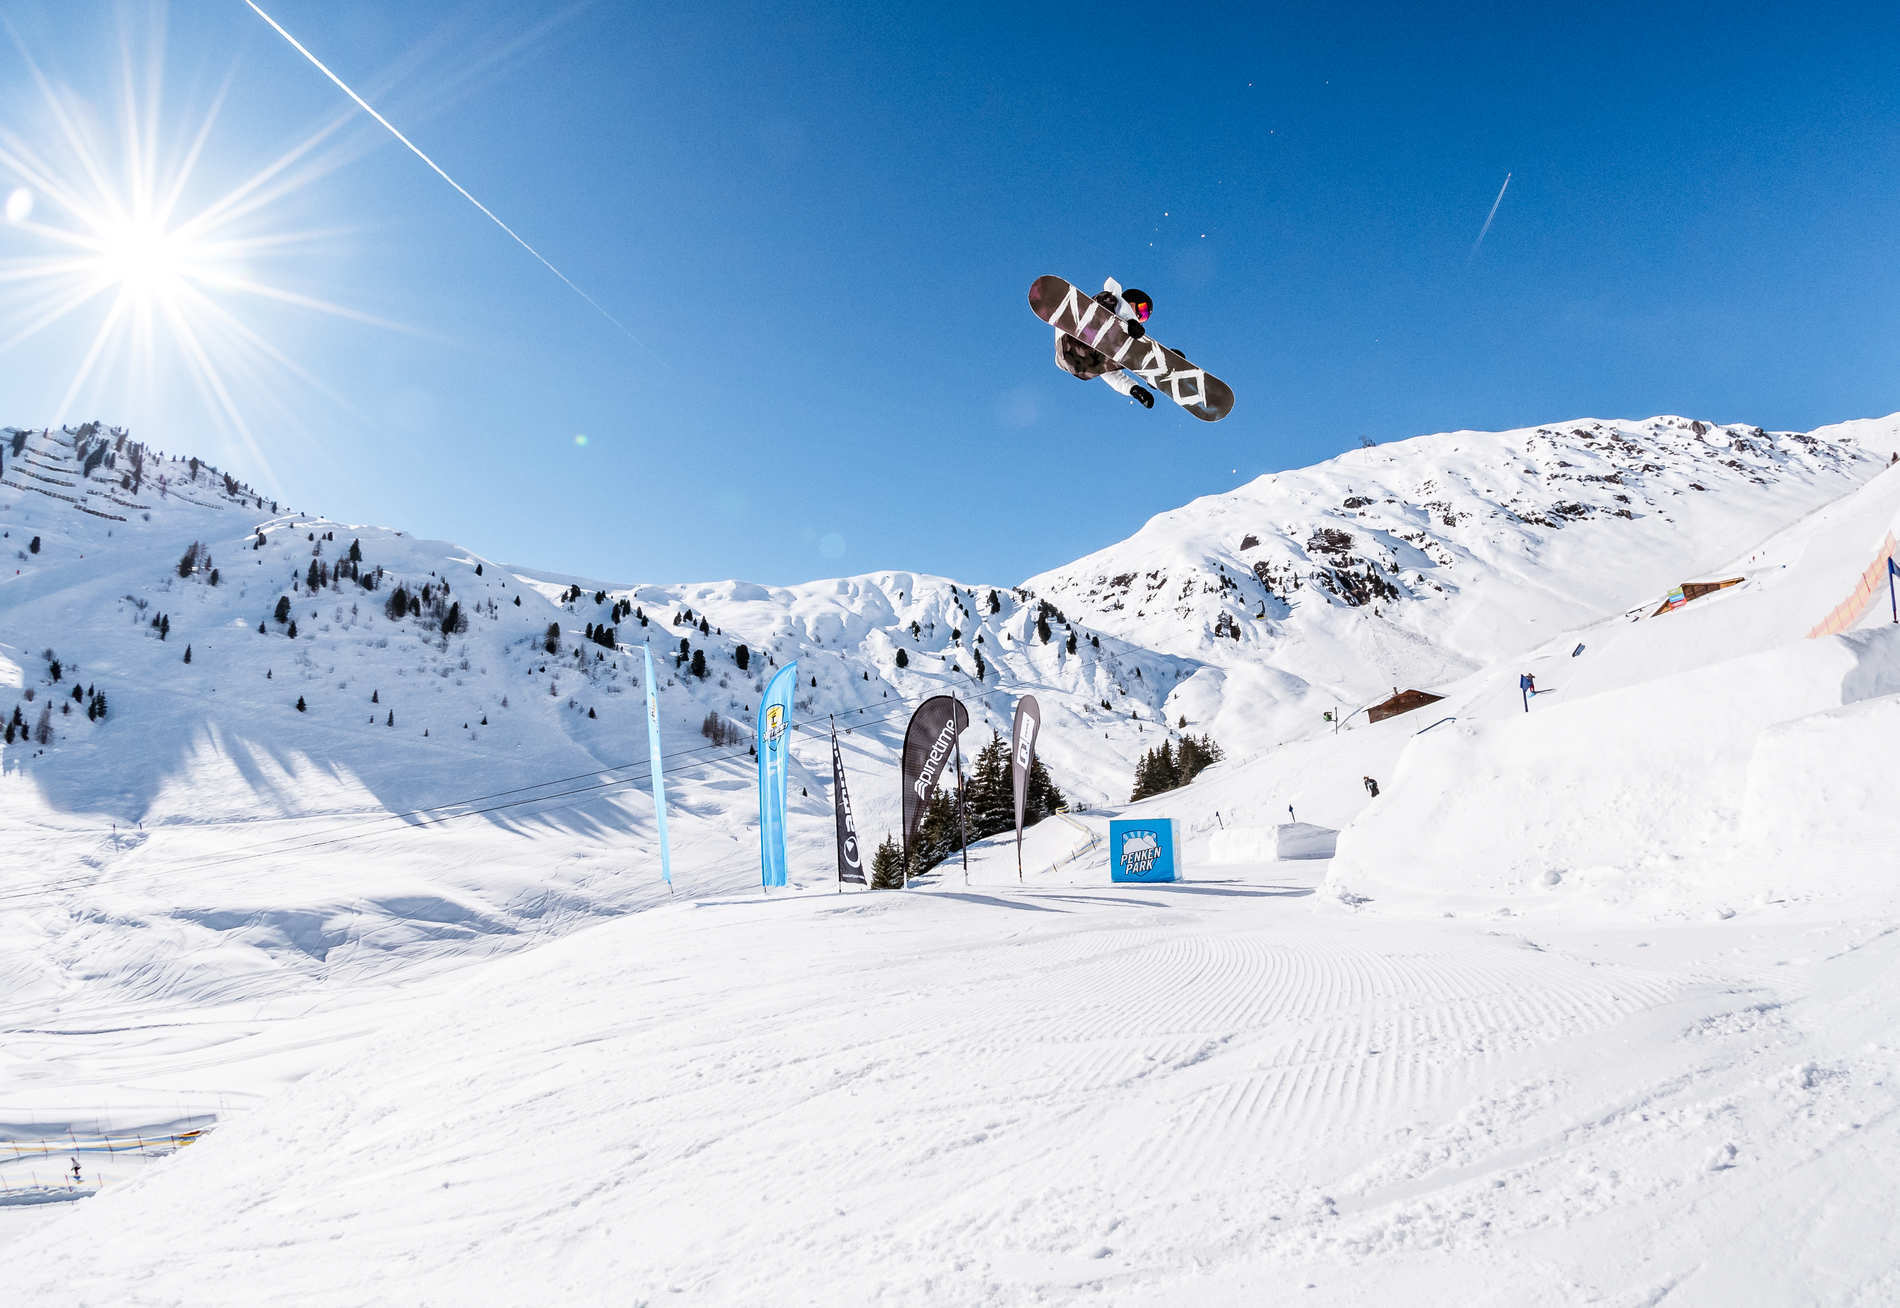 web mayrhofen 23 02 2019 action sb unknown rider christian riefenberg qparks 7